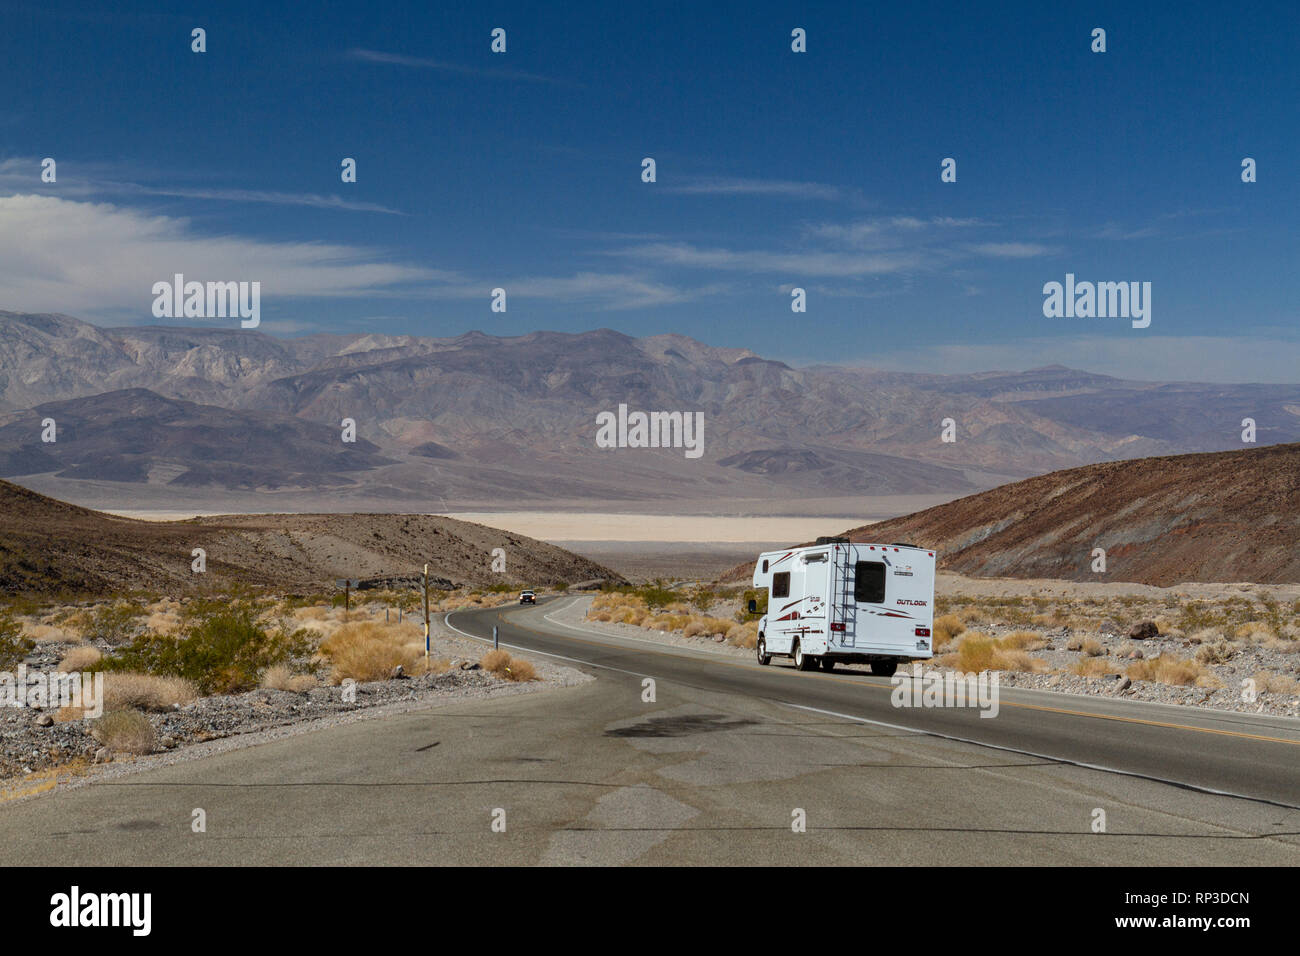 Camper van on California State Route 190 heading towards Panamint Springs, Death Valley National Park, California, United States. Stock Photo